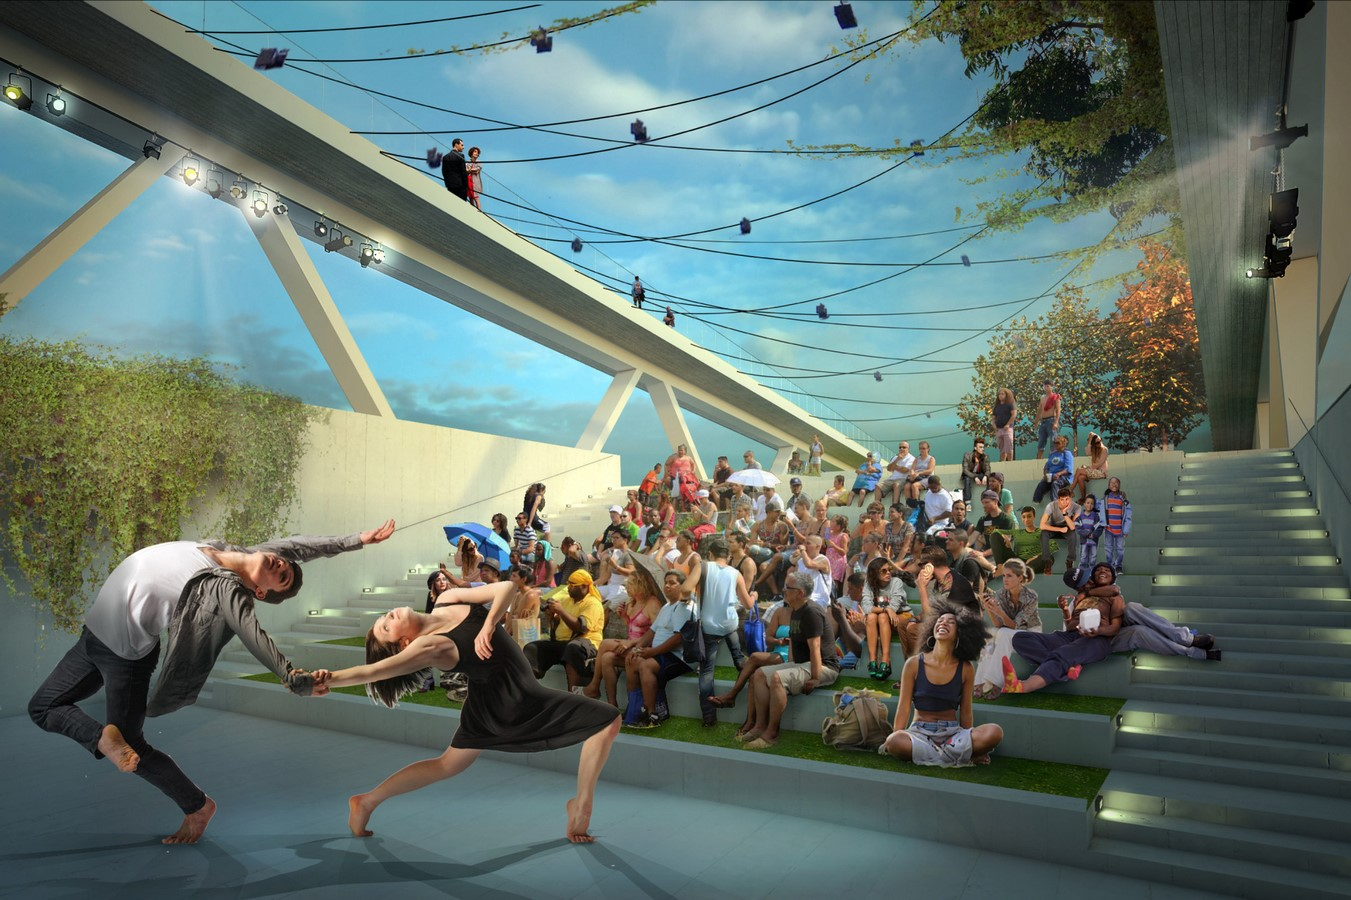 11th Street Bridge Park by Rem Koolhaas: Uniting the divided city - Sheet22